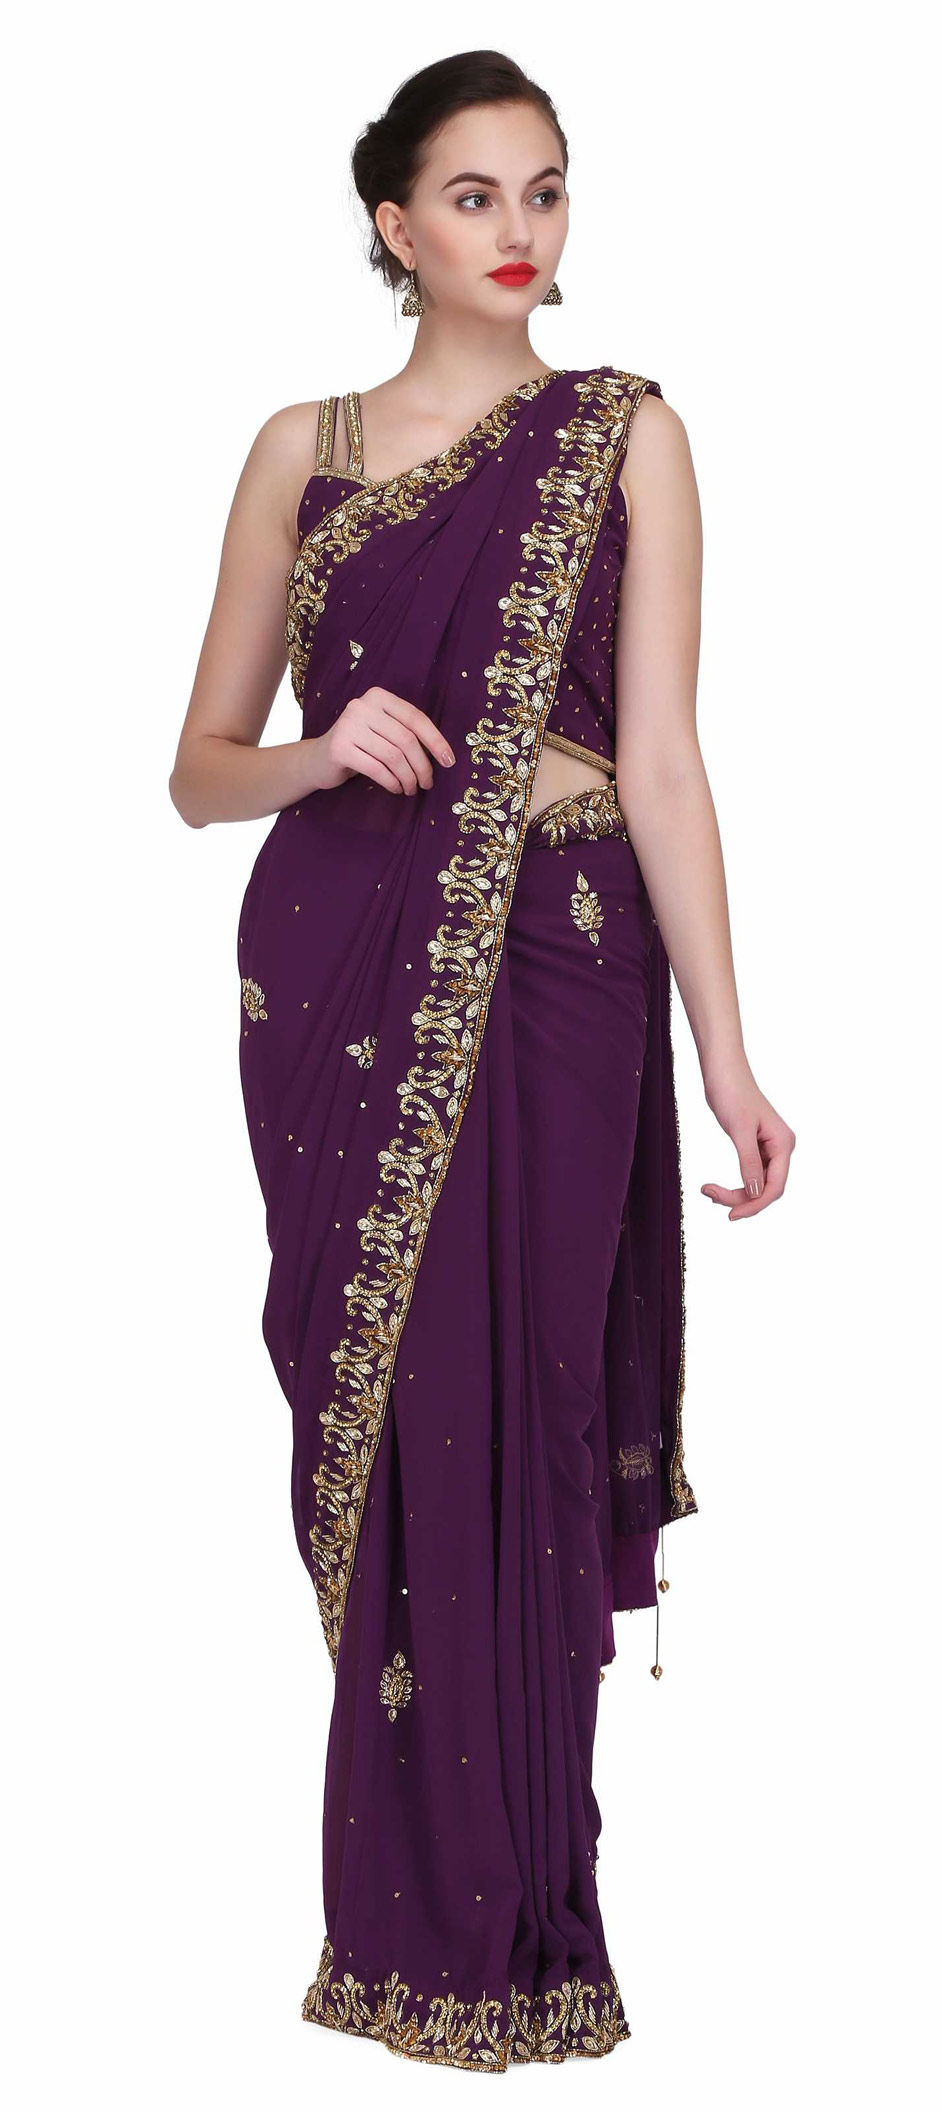 Georgette Party Wear Saree in Purple and Violet with Zari work